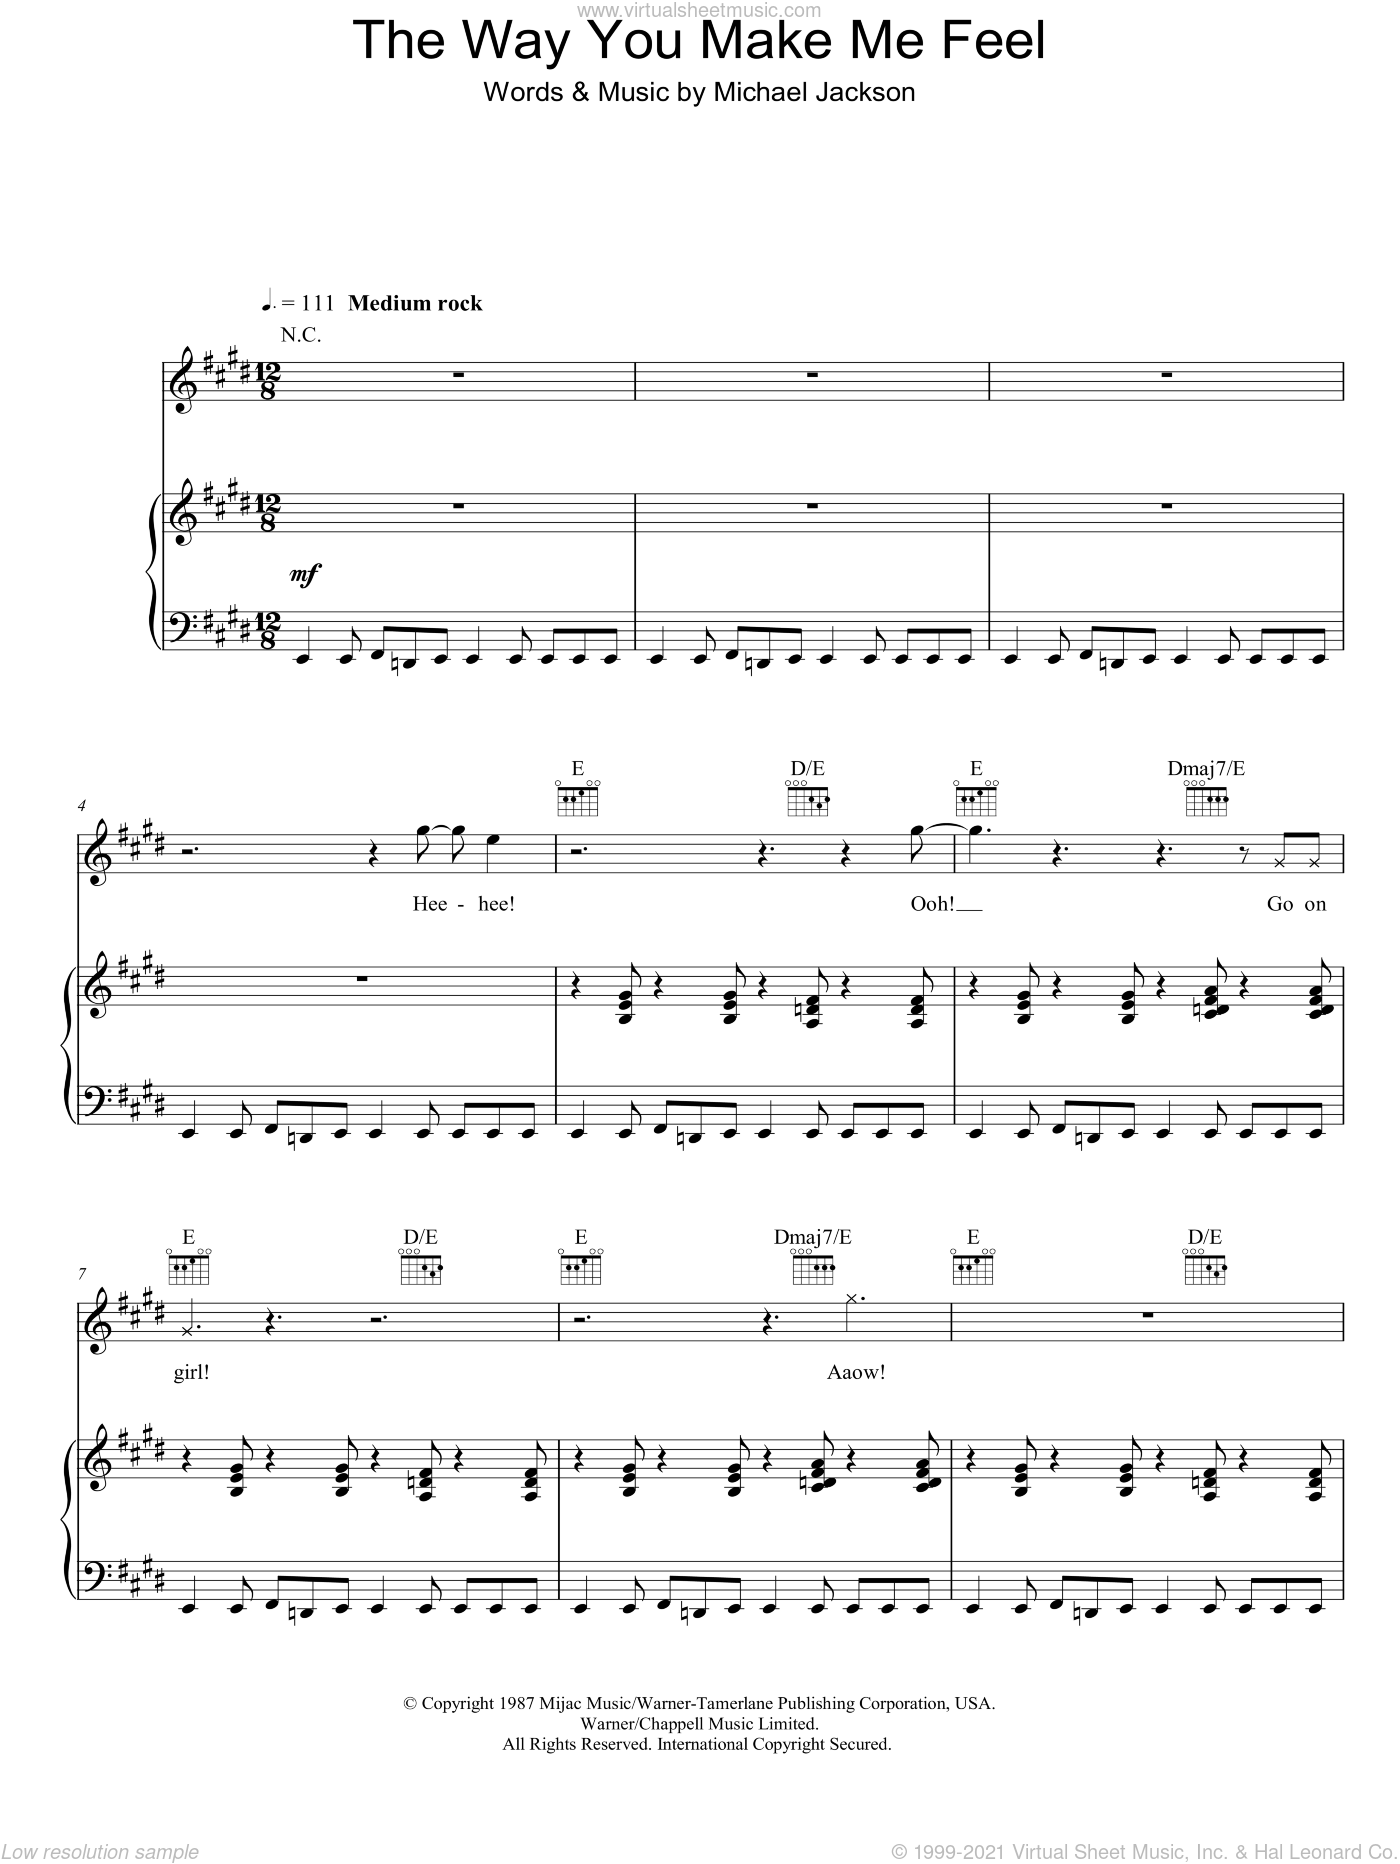 The Way You Make Me Feel sheet music for voice, piano or guitar by Michael Jackson. Score Image Preview.